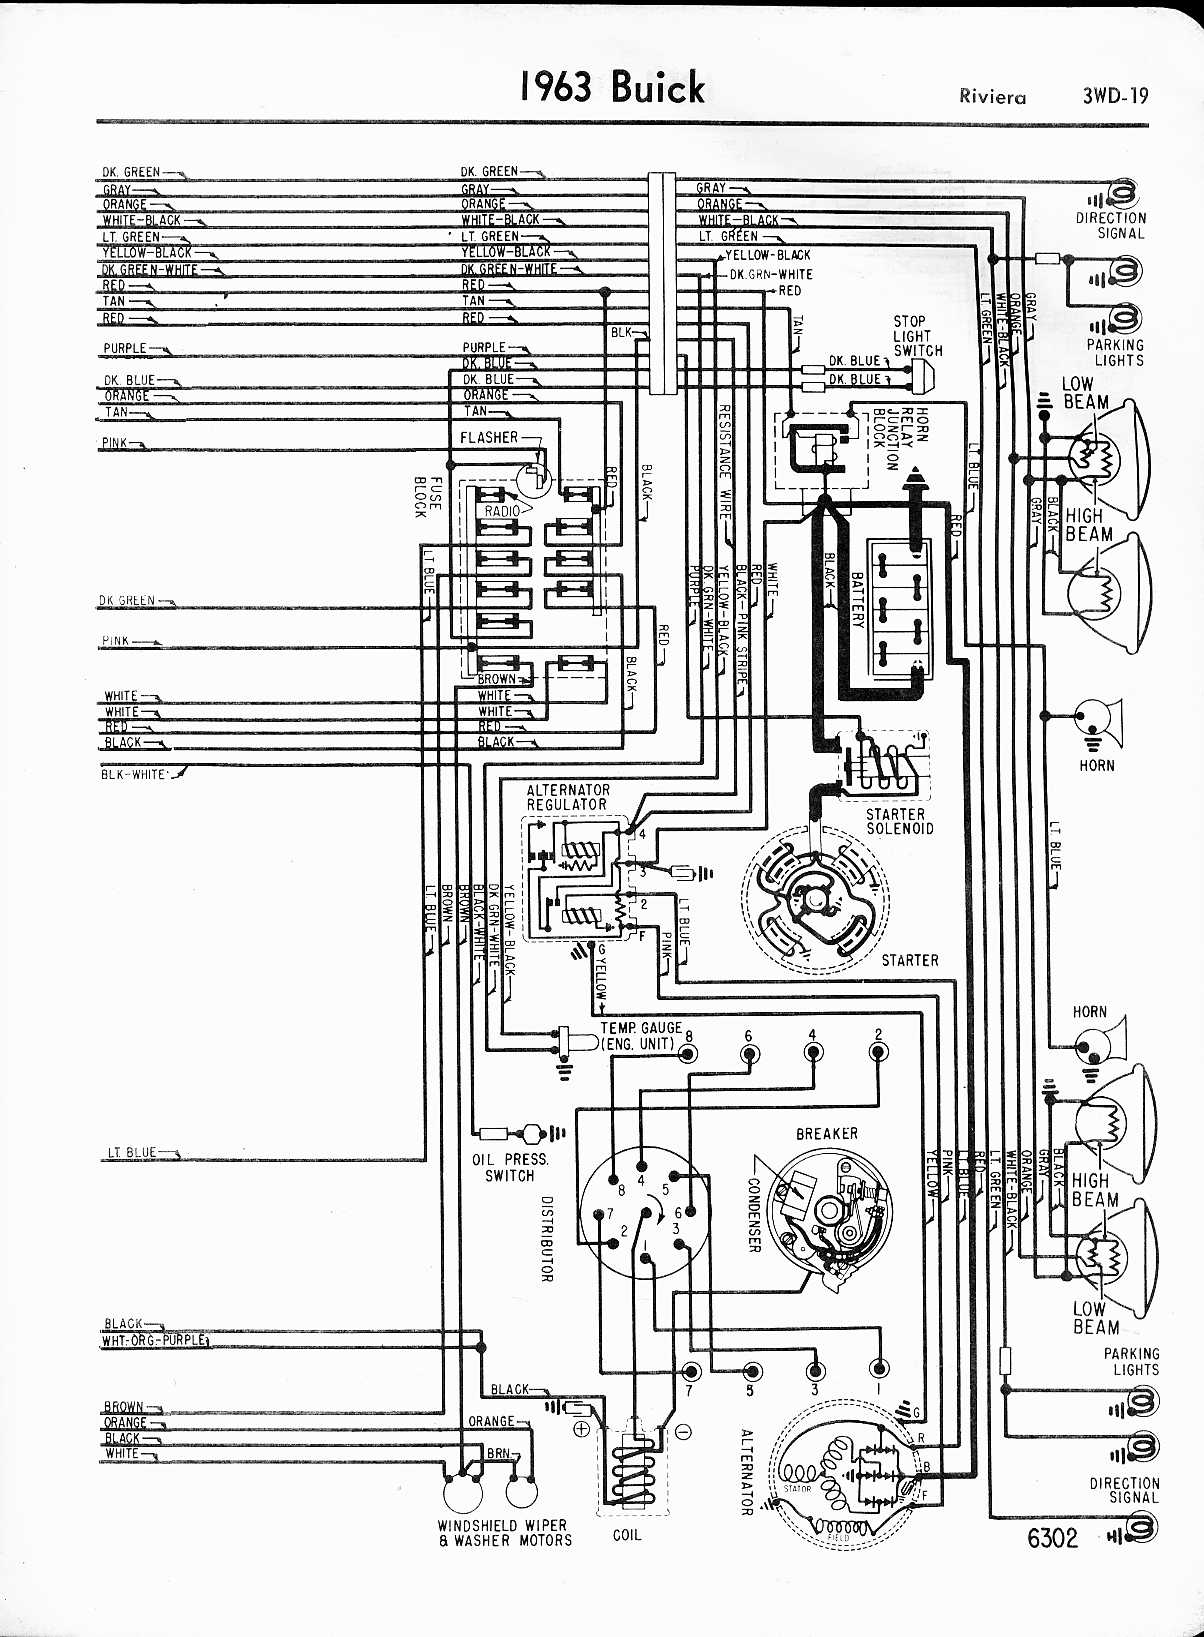 MWireBuic65_3WD 019 buick wiring diagrams 1957 1965 1963 C10 Wiring Diagram at arjmand.co